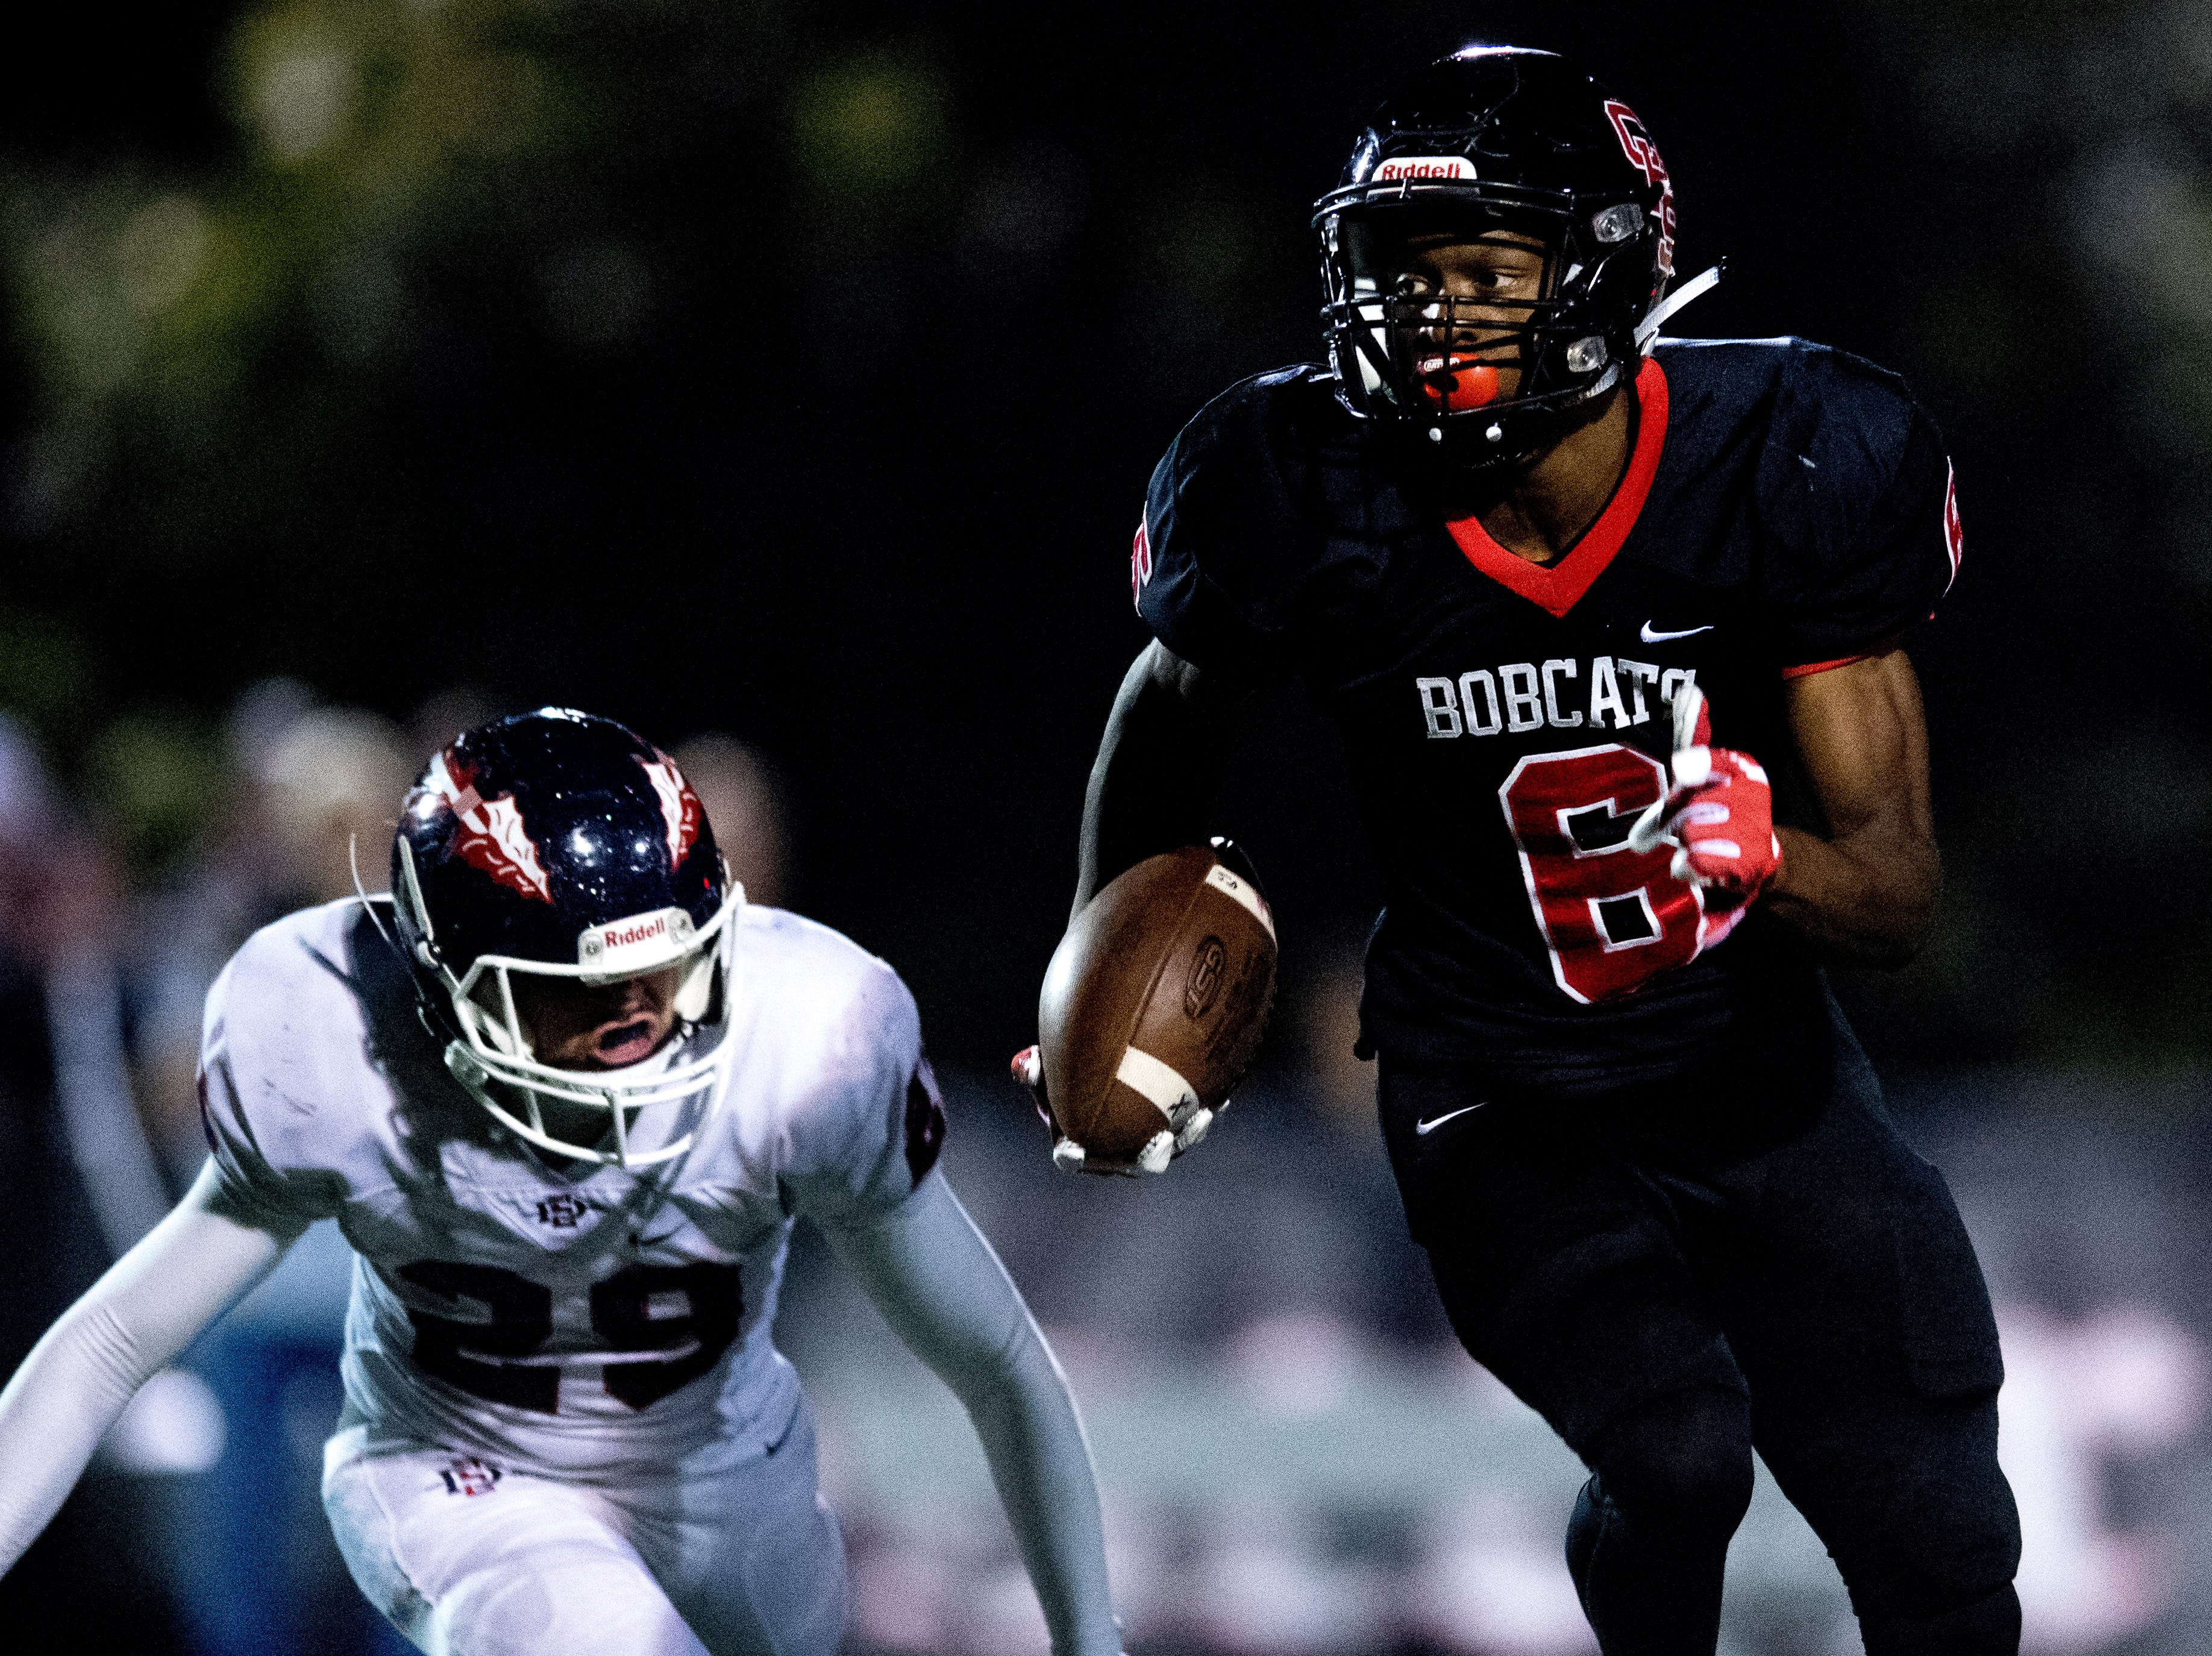 Central's Demetrien Johnson (6) runs with the ball as South-Doyle's Isaac Hamilton (29) pursues him during a football game between Central and South-Doyle at Central High School in Knoxville, Tennessee on Friday, October 19, 2018.